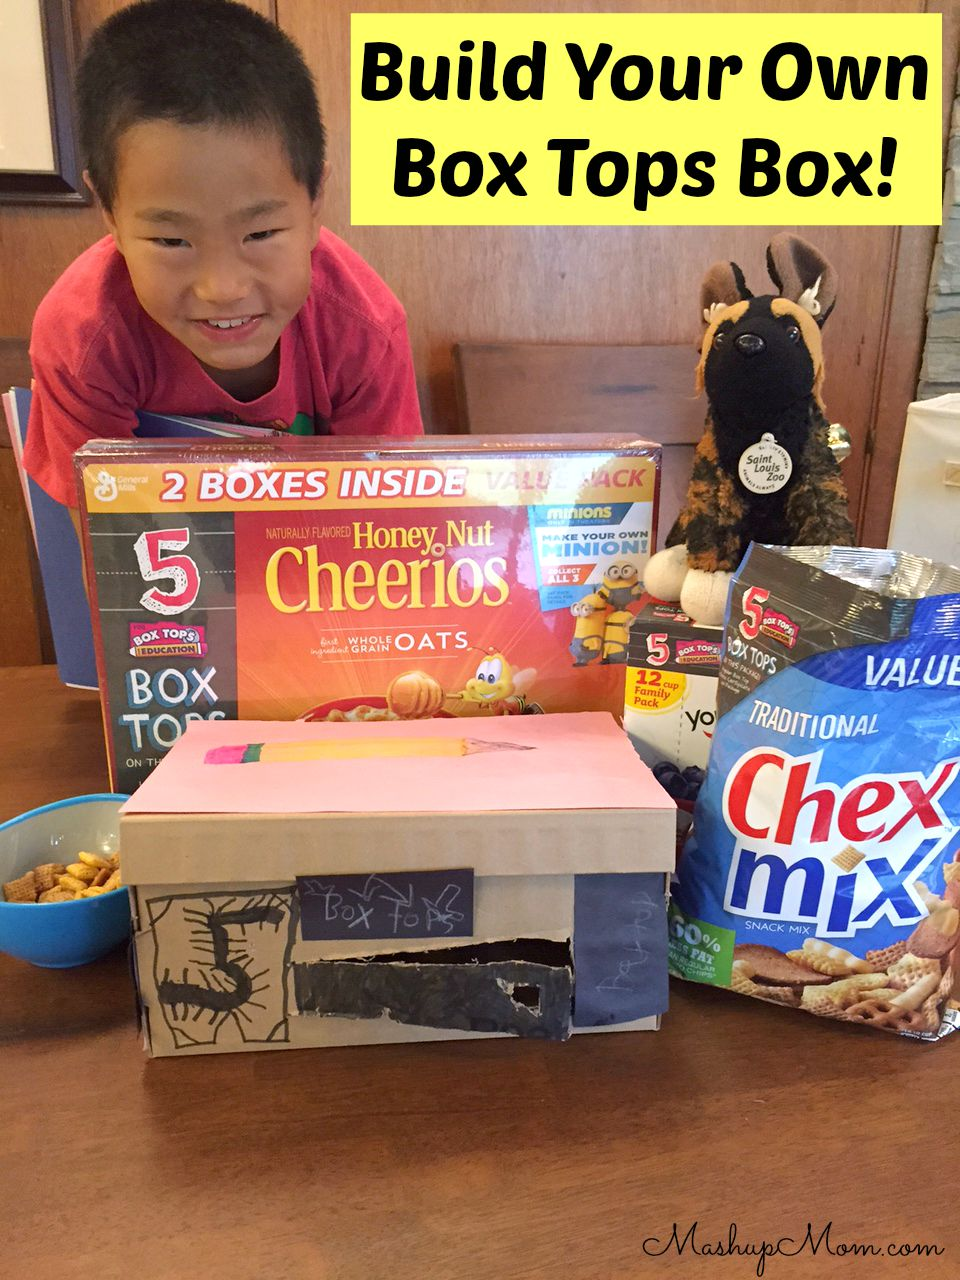 build-your-own-box-tops-box